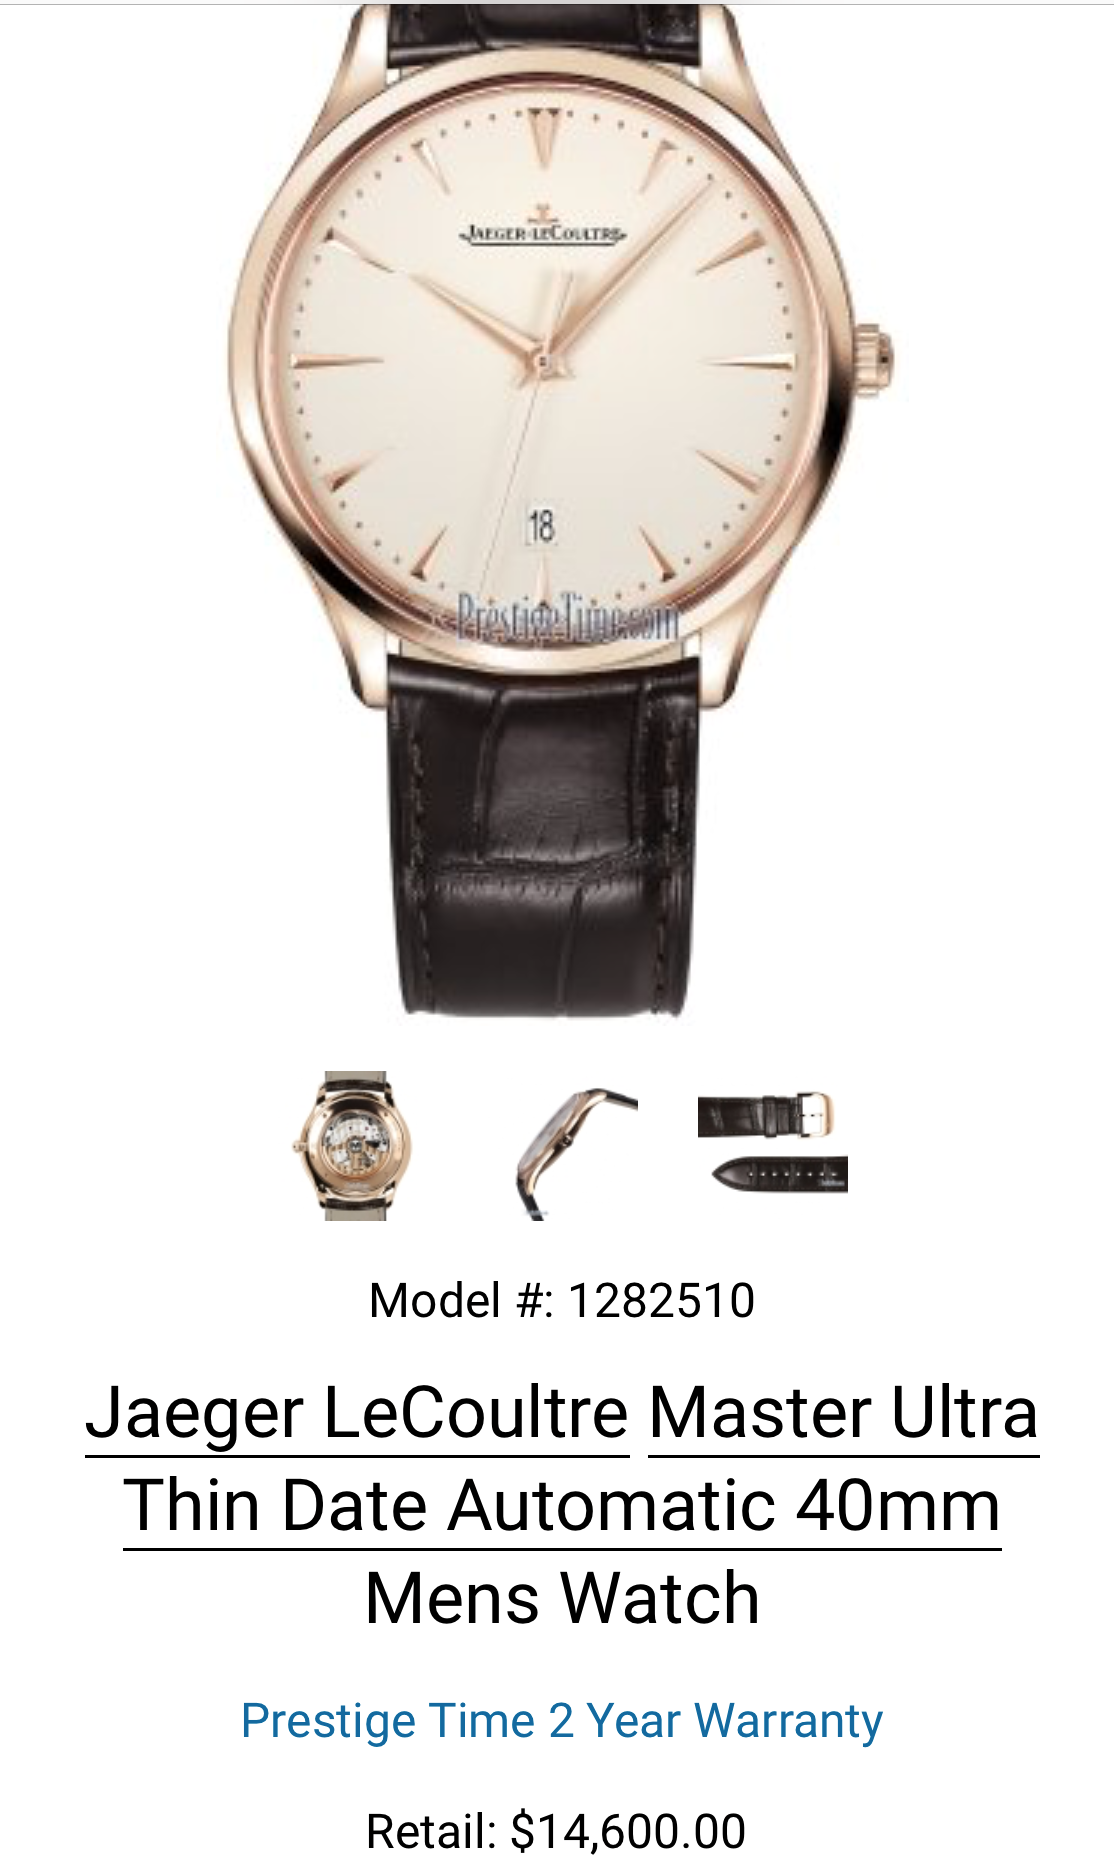 JAEGER LECOULTRE Master Ultra Thin Date Automatic